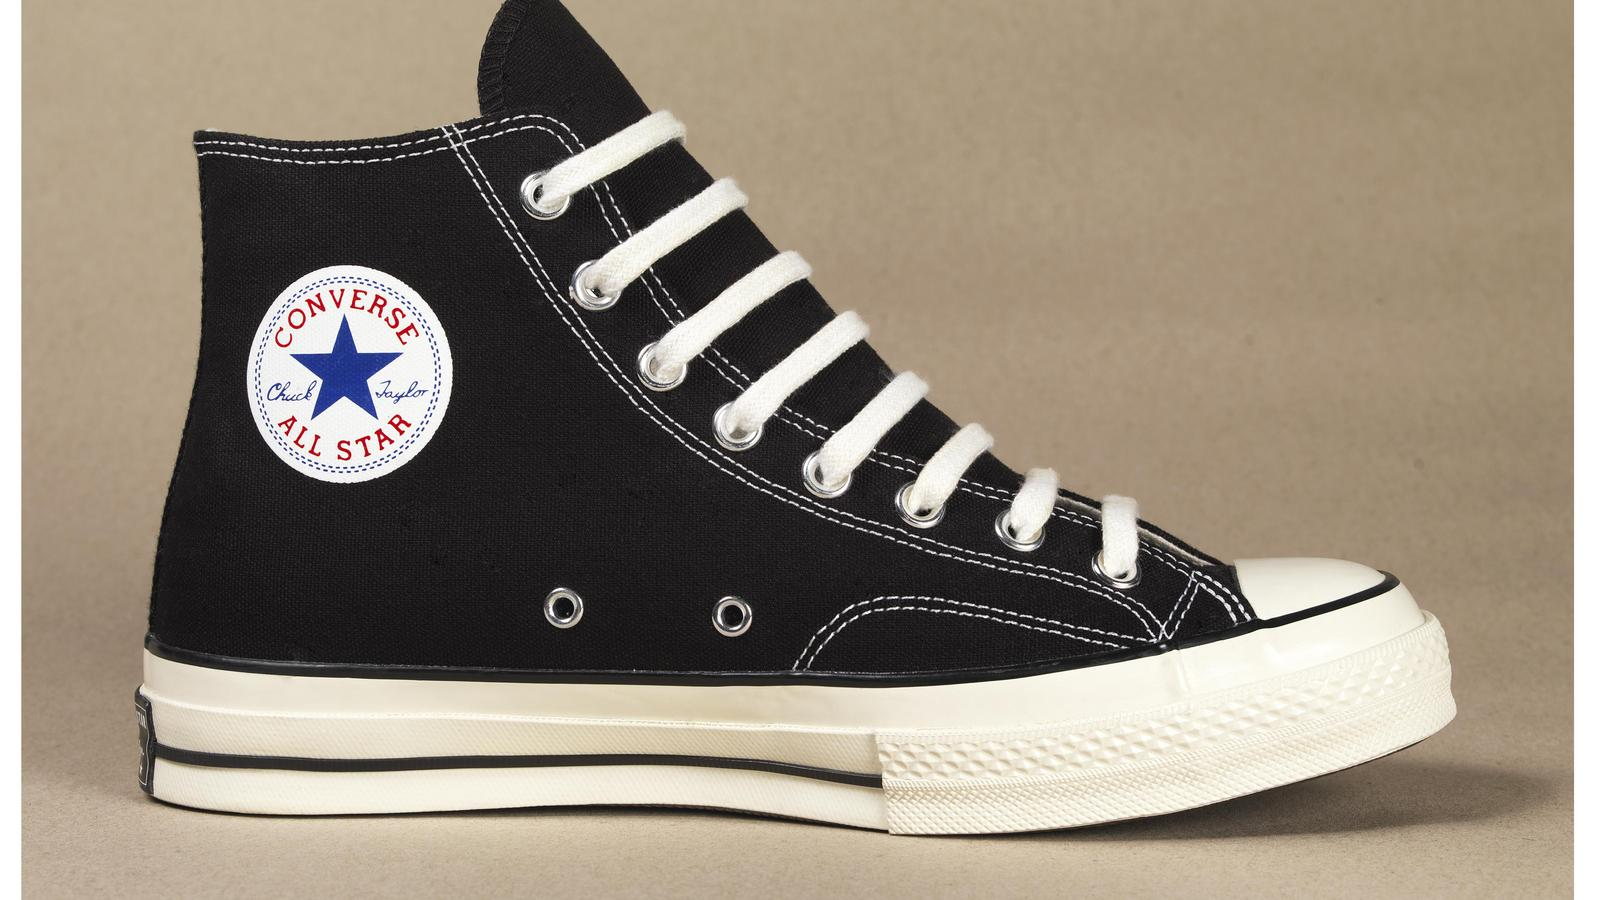 Converse 1970s Chuck Taylor All Star Black Original